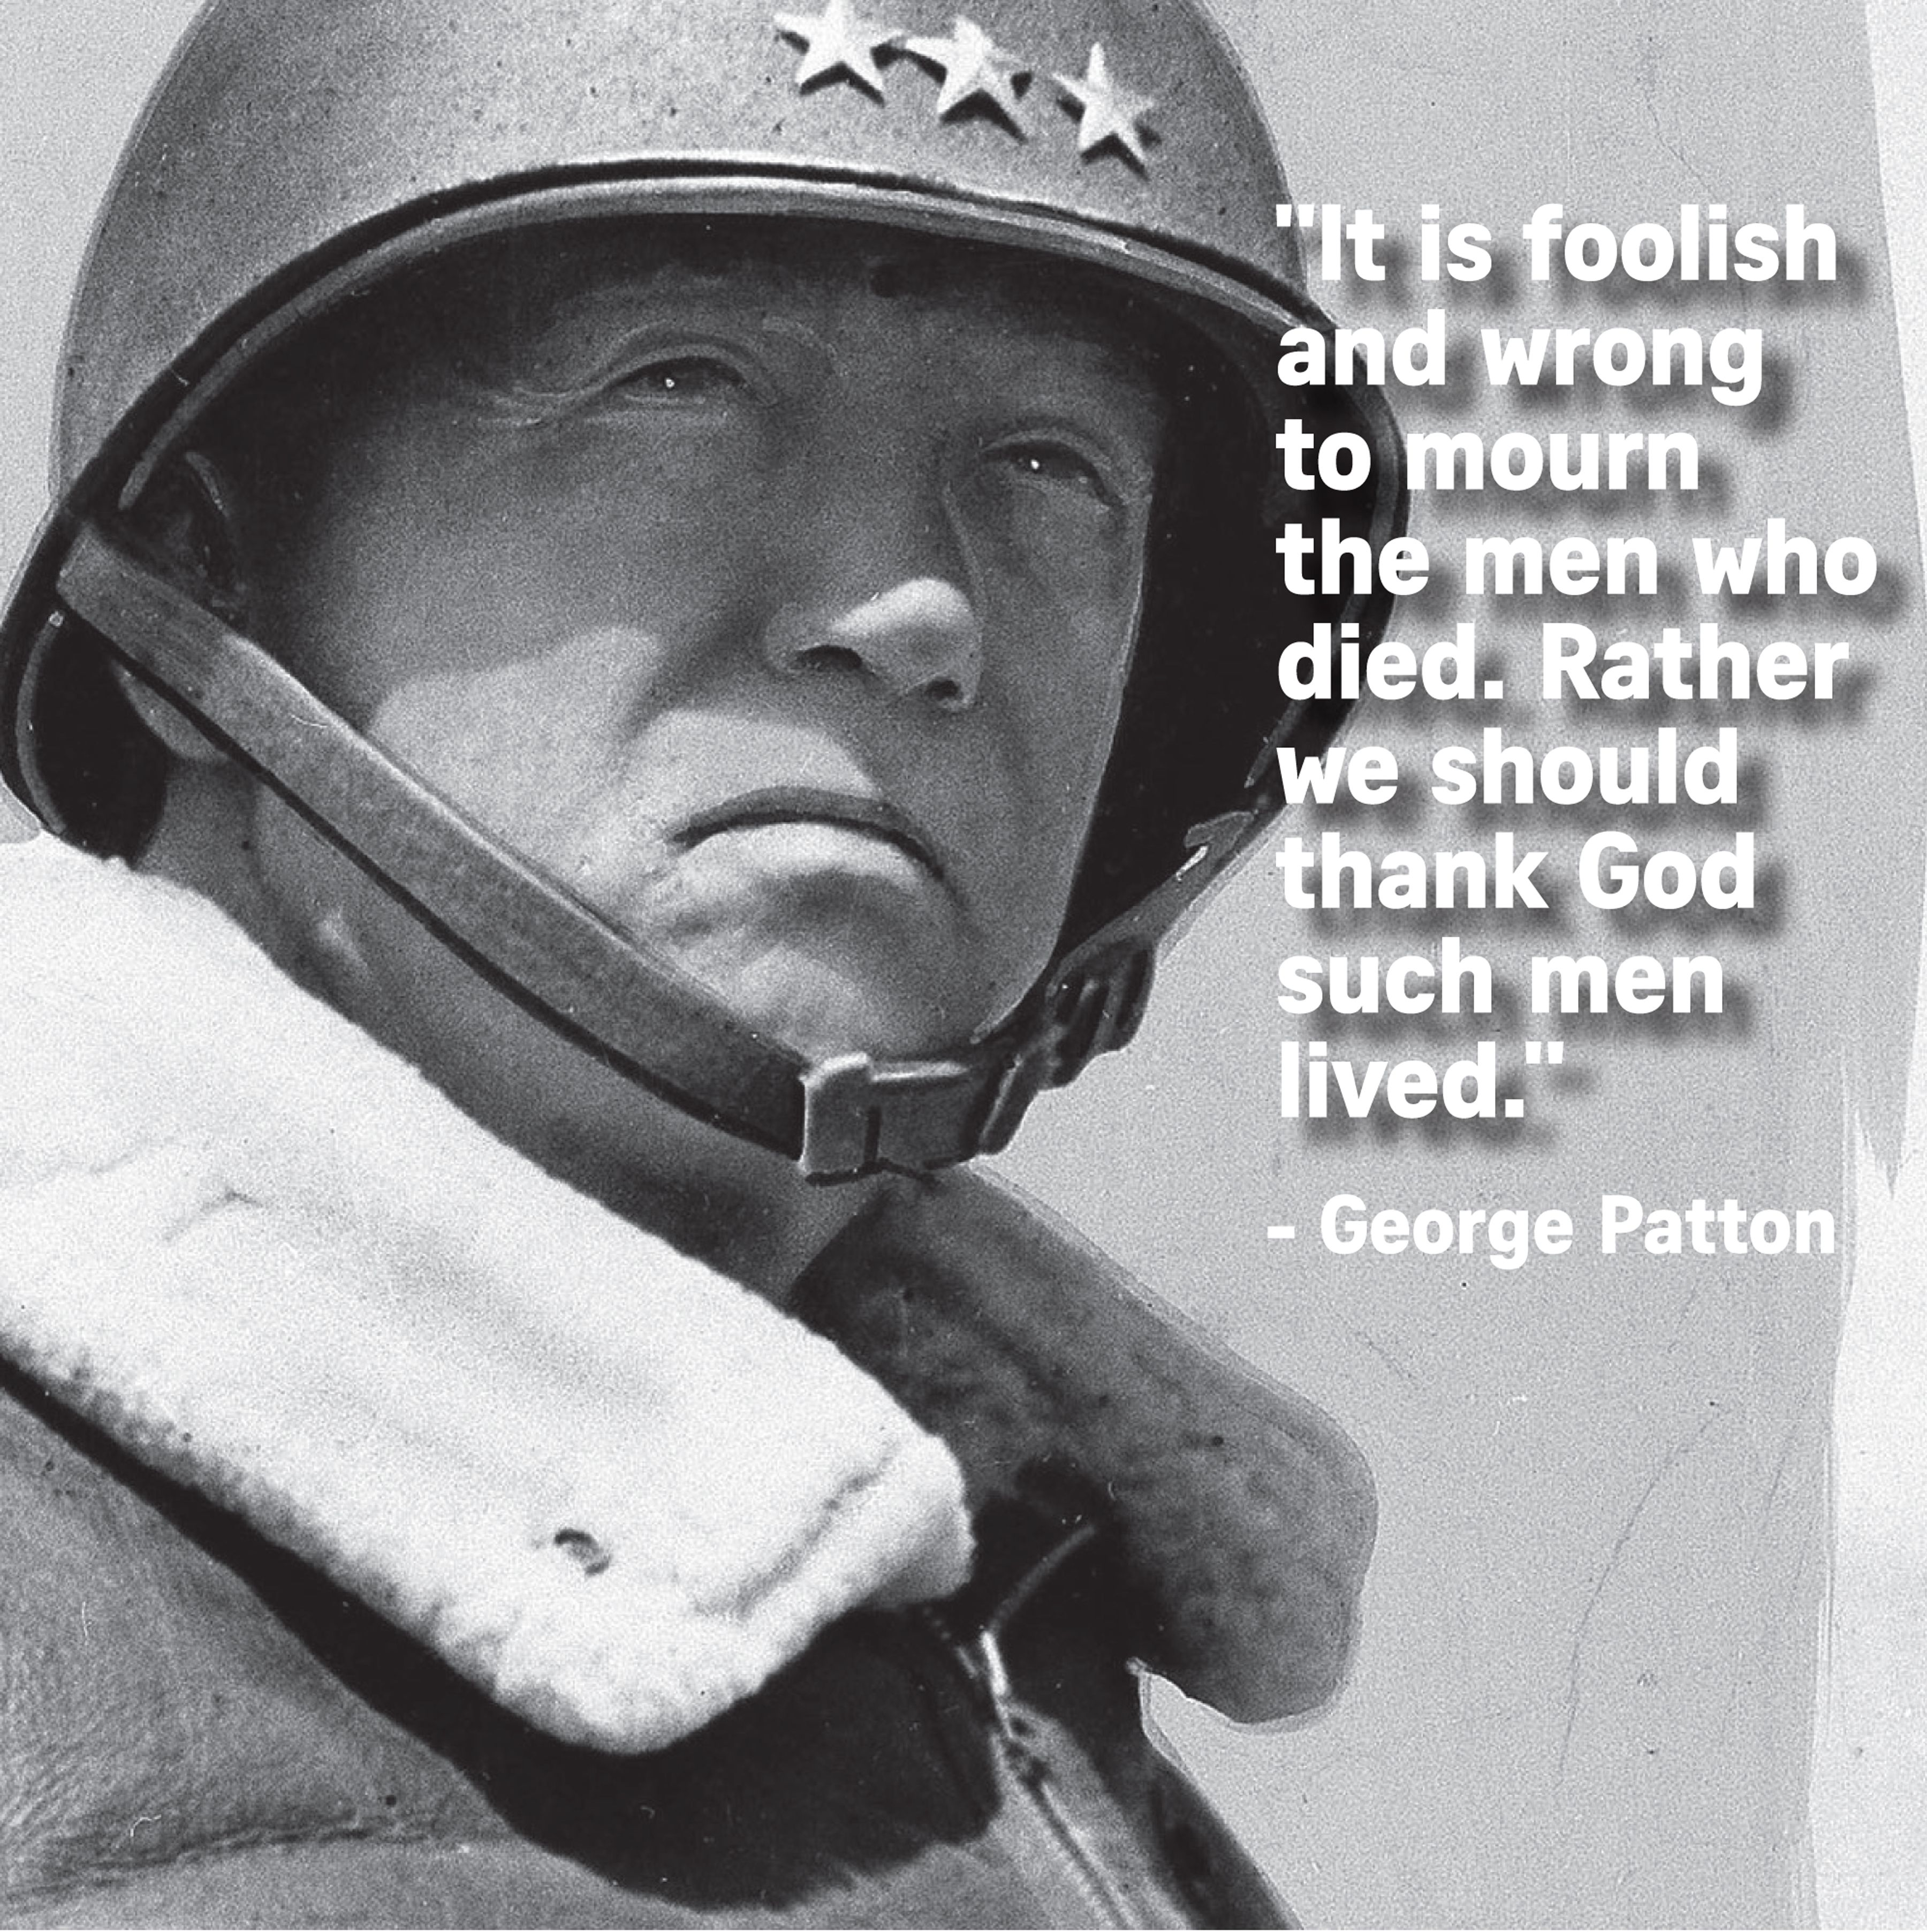 Nine Quotes Capturing The Spirit Of Memorial Day 5 29 17 Quotes Of Great Eloquence However Historical Quotes Famous Historical Quotes George Patton Quotes